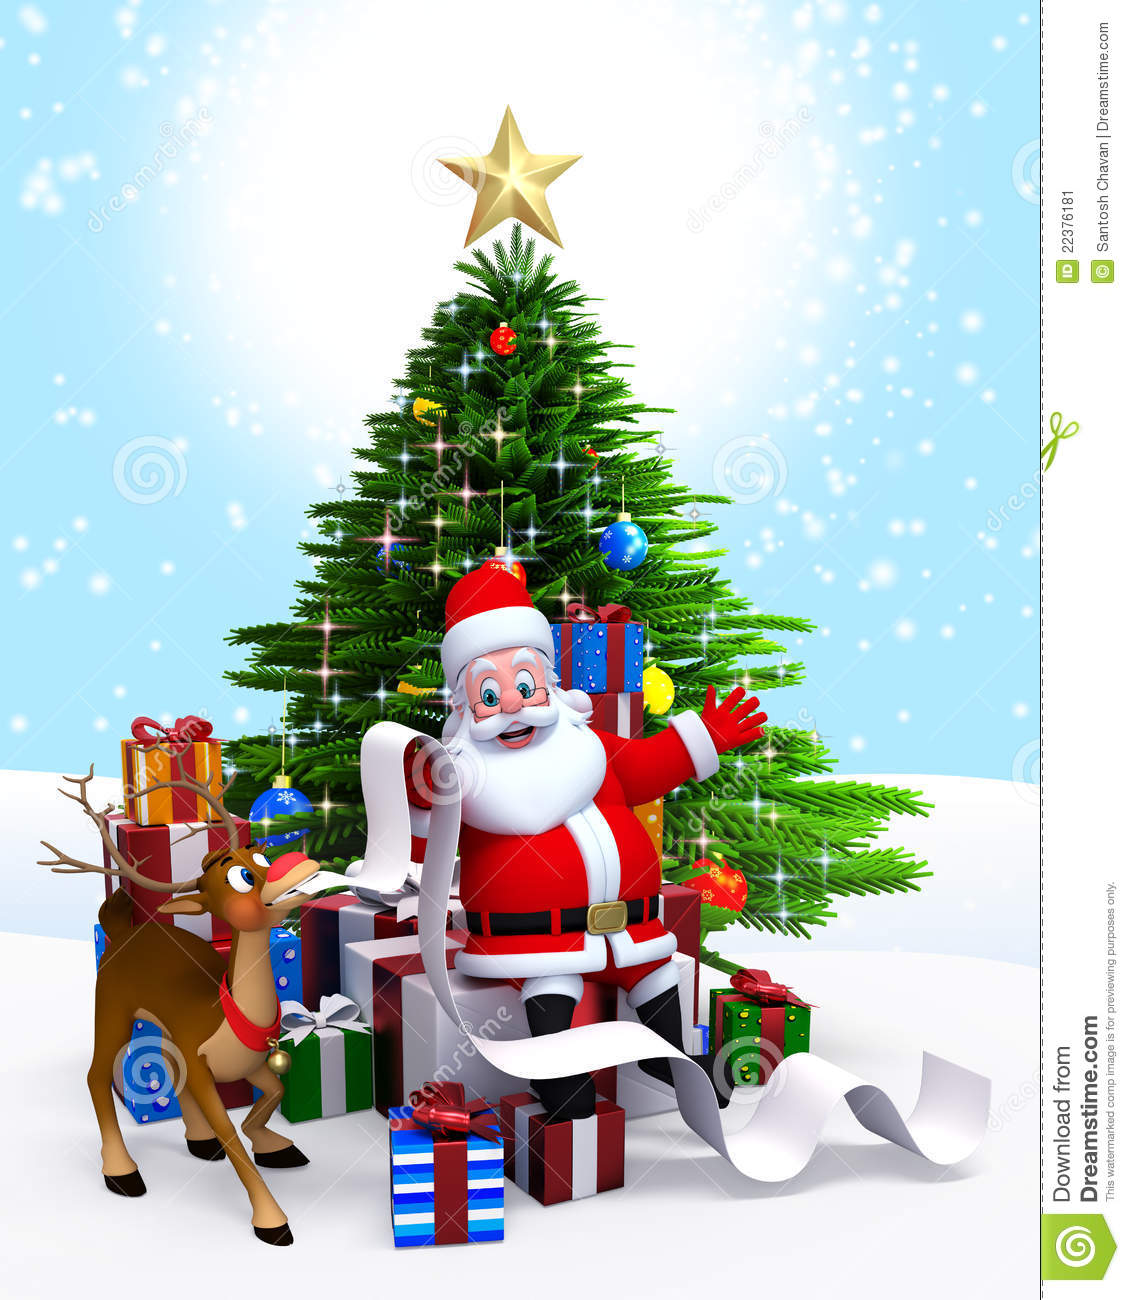 Stock Image: Santa Claus & Christmas tree with gift list. Image ...